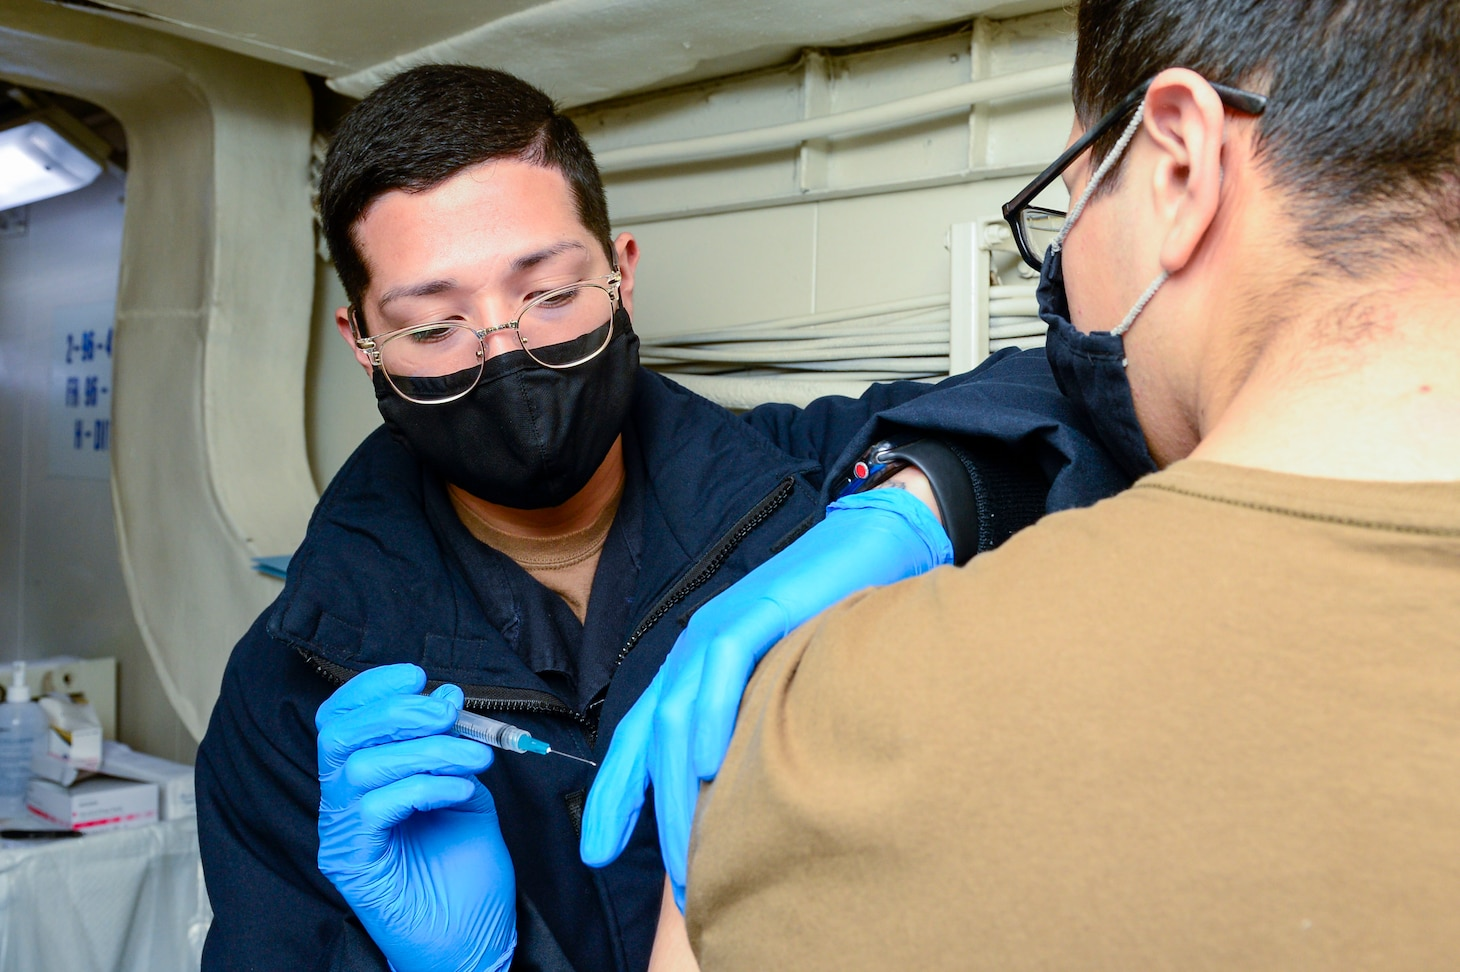 U.S. Navy Hospital Corpsman 3rd Class Adriel Arredondo, from Dallas, left, administers a COVID-19 vaccine to Electrician's Mate Fireman Joseph Brooks, from Jasper, Ga., aboard the aircraft carrier USS Theodore Roosevelt (CVN 71) April 30, 2021.